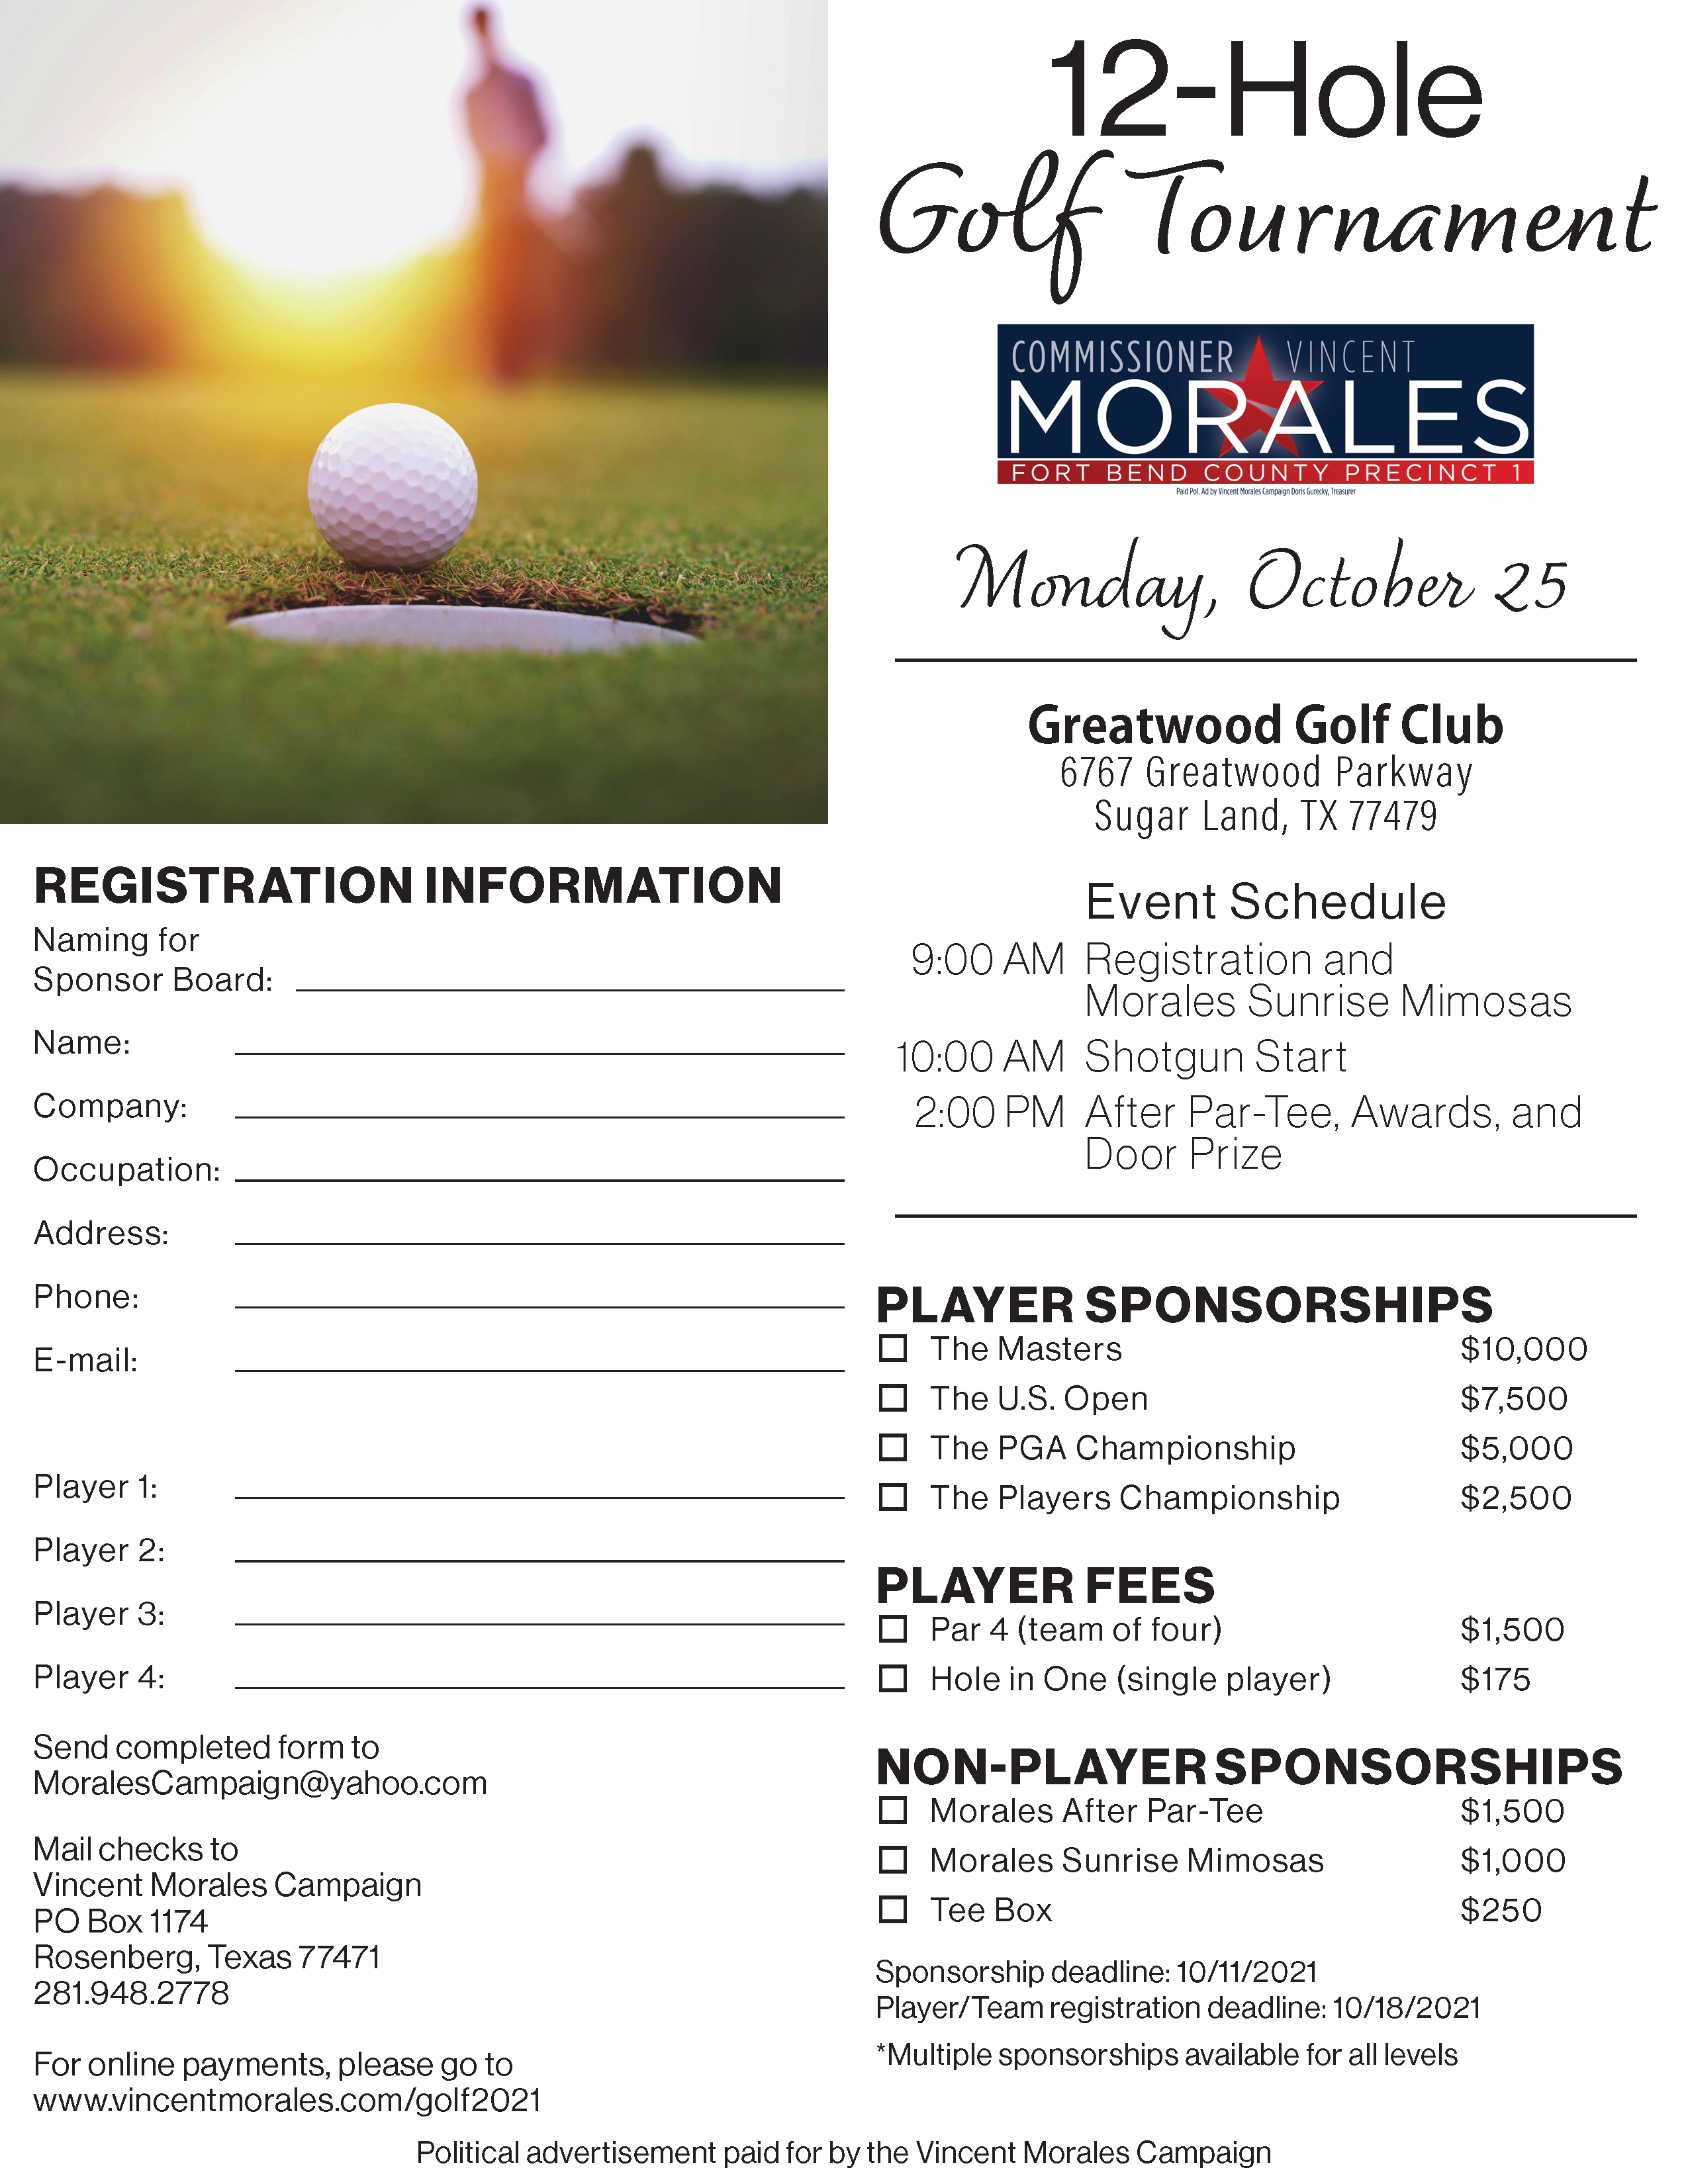 Morales_Golf_Tournament_Flyer_Greatwood_Page_1.png